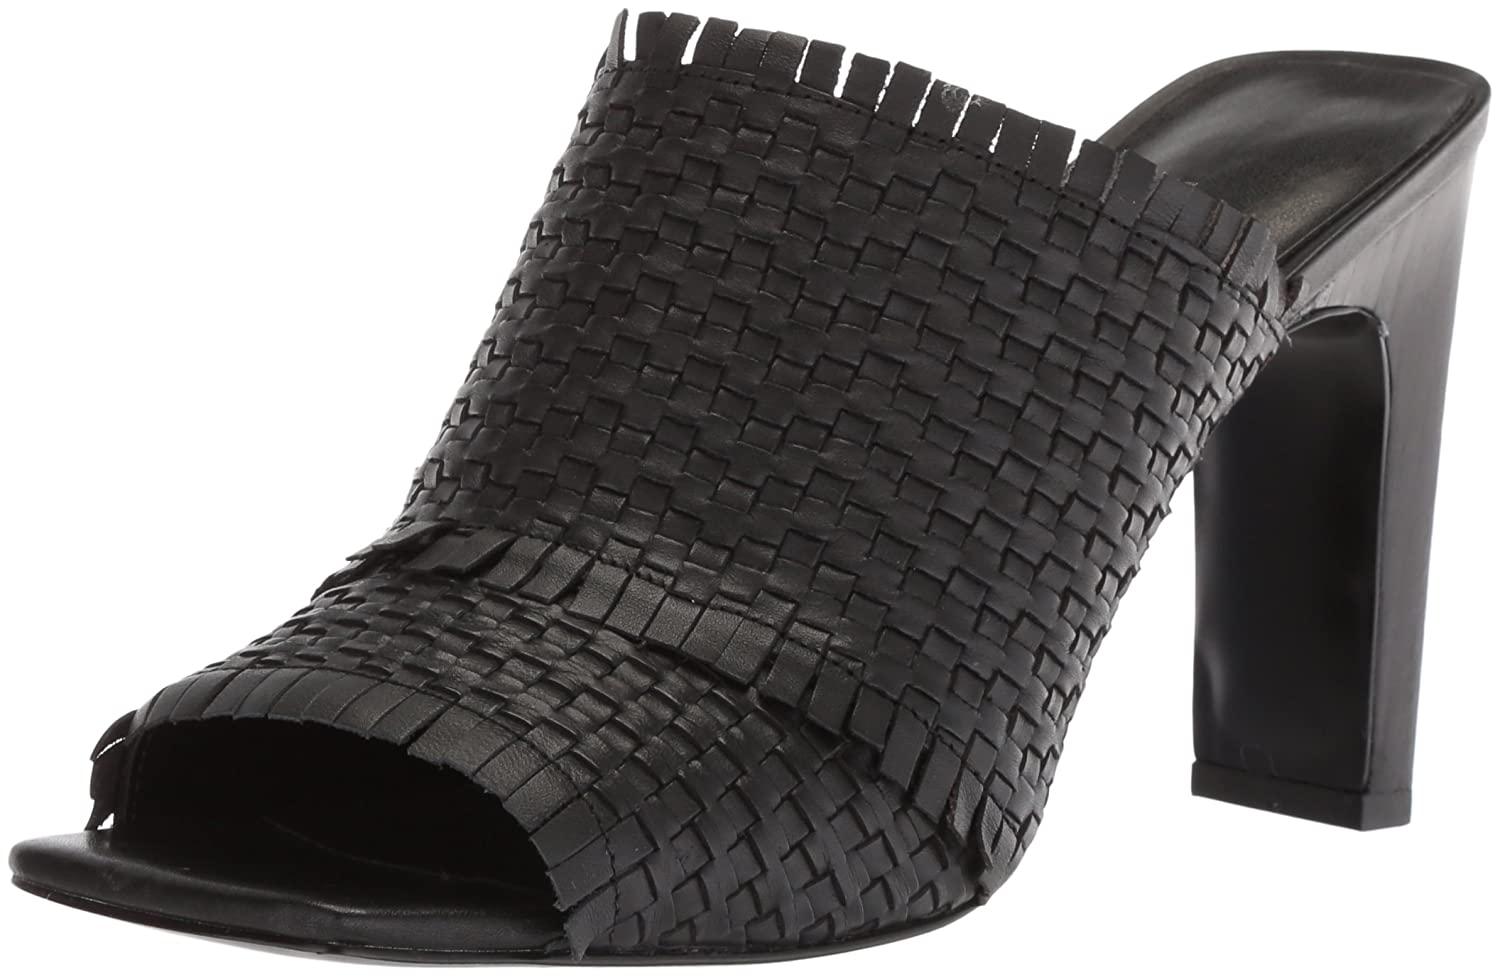 Nine West Women's Lucili Leather Slide Sandal B074NJT3VJ 6 M US|Black Leather